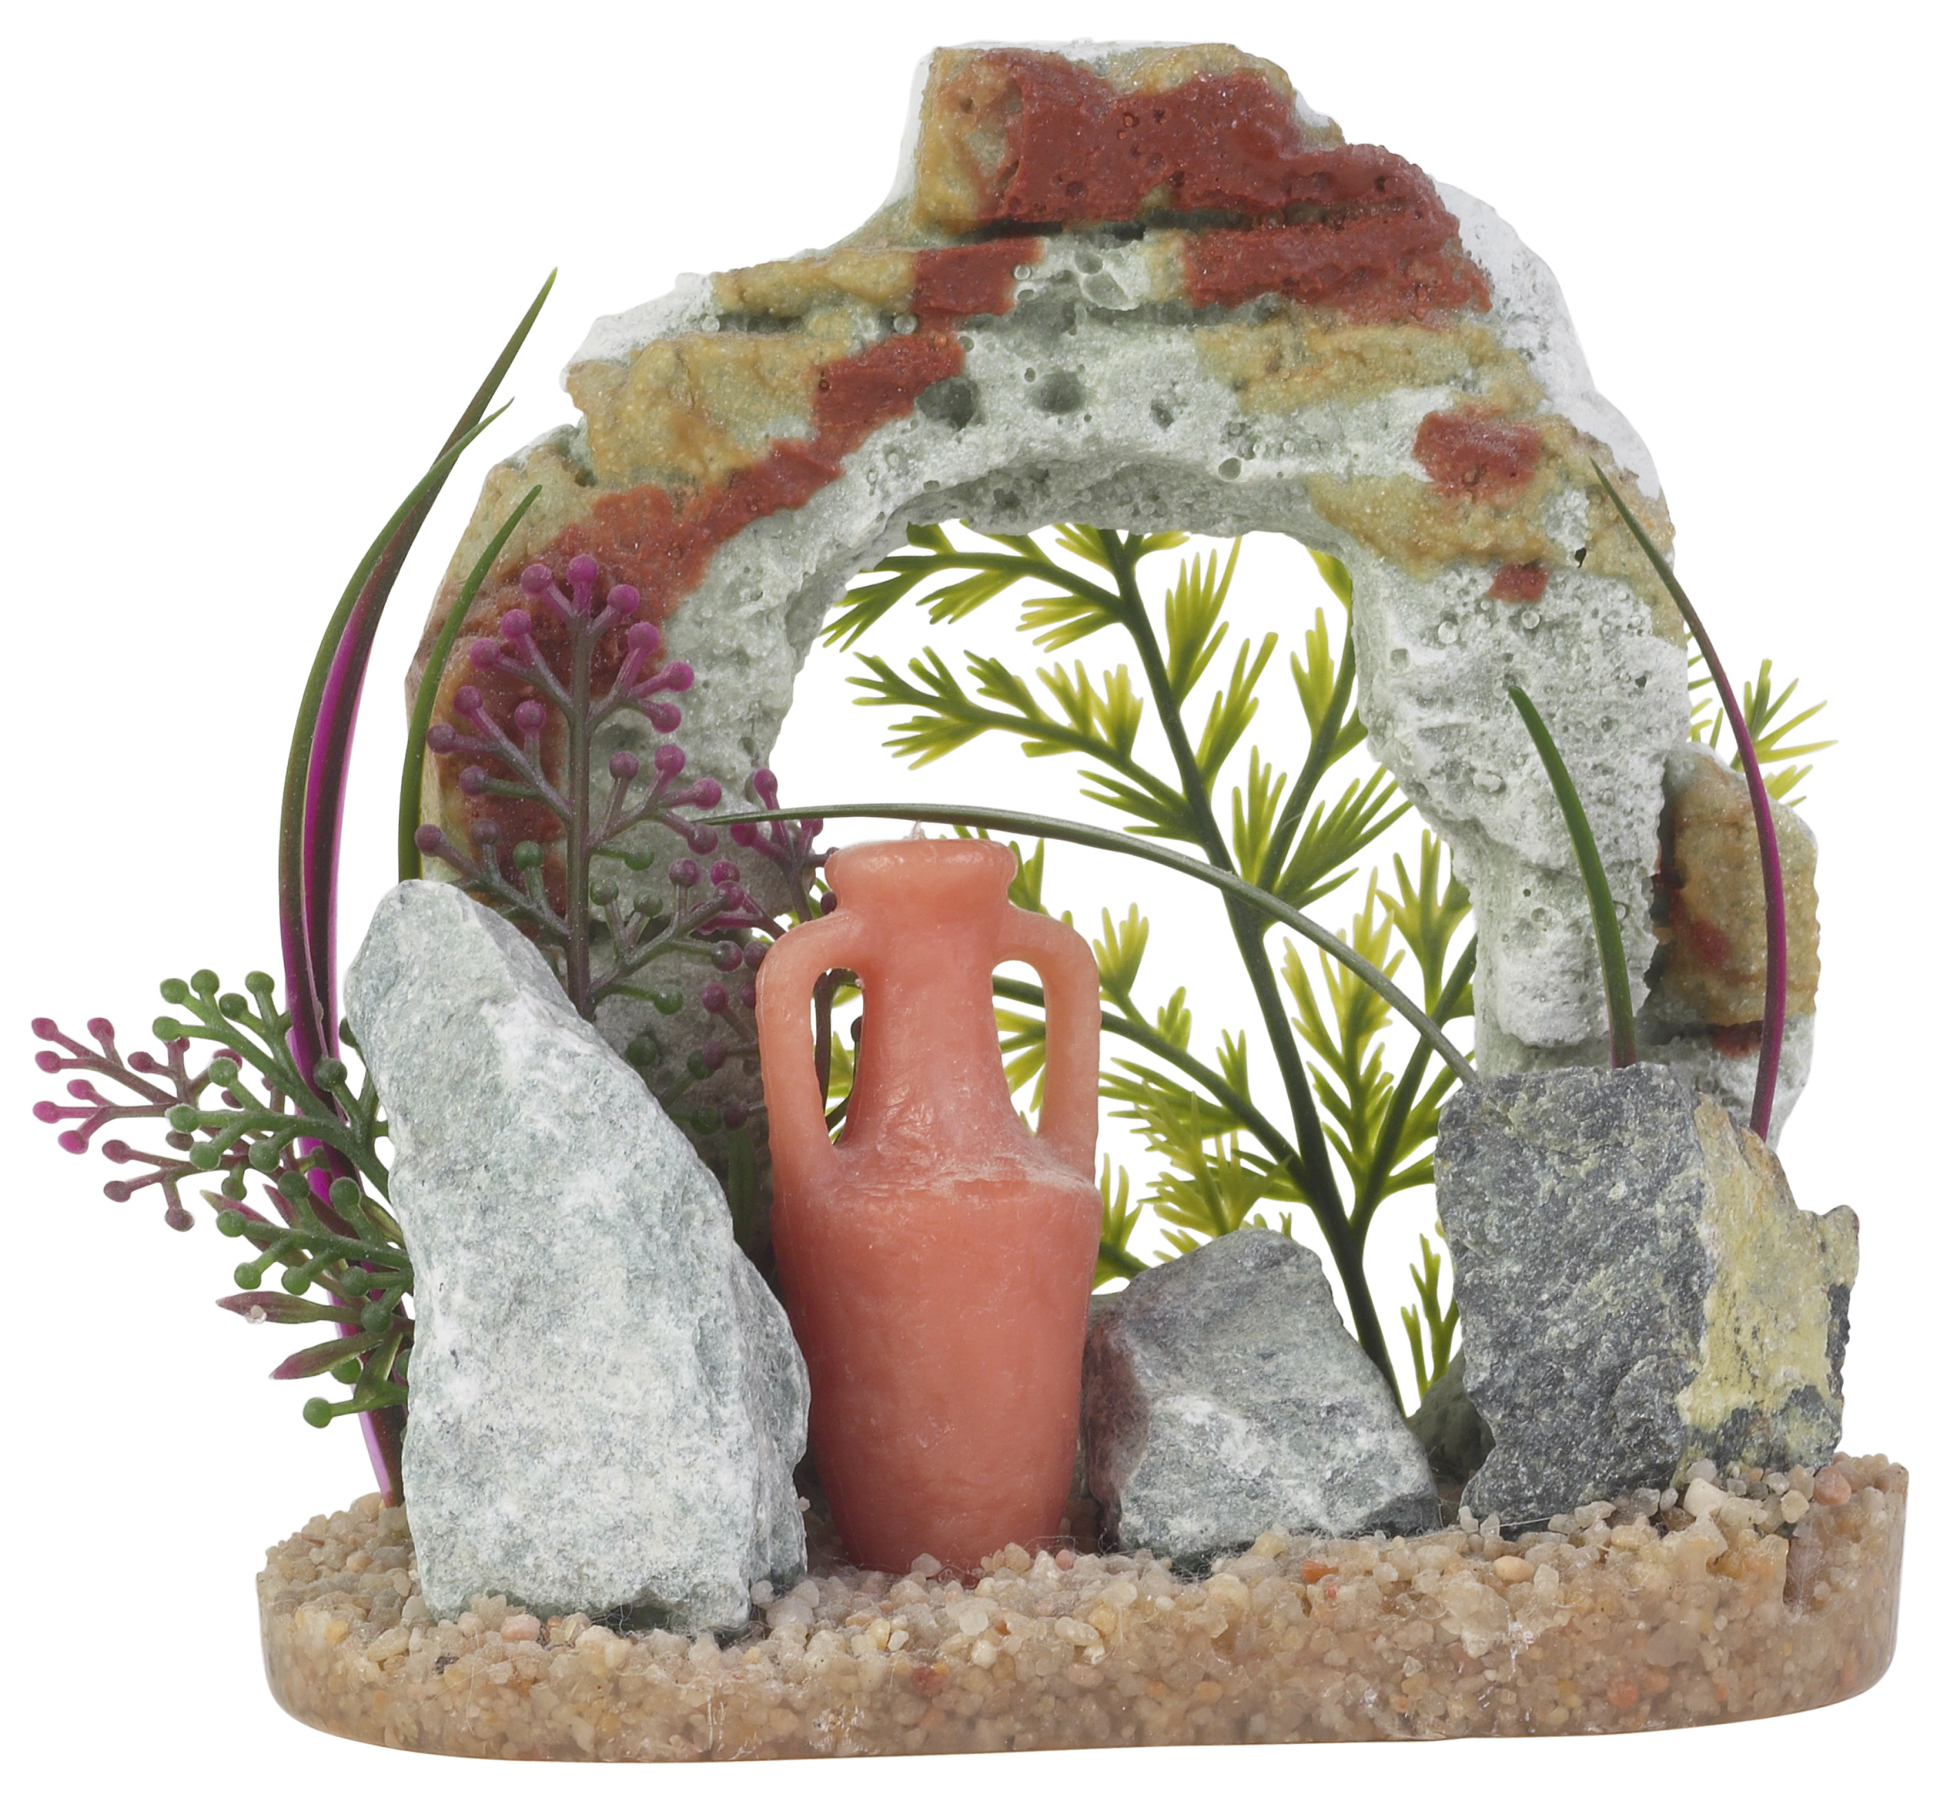 How To Make Your Own Ceramic Rocks Caves For Aquariums